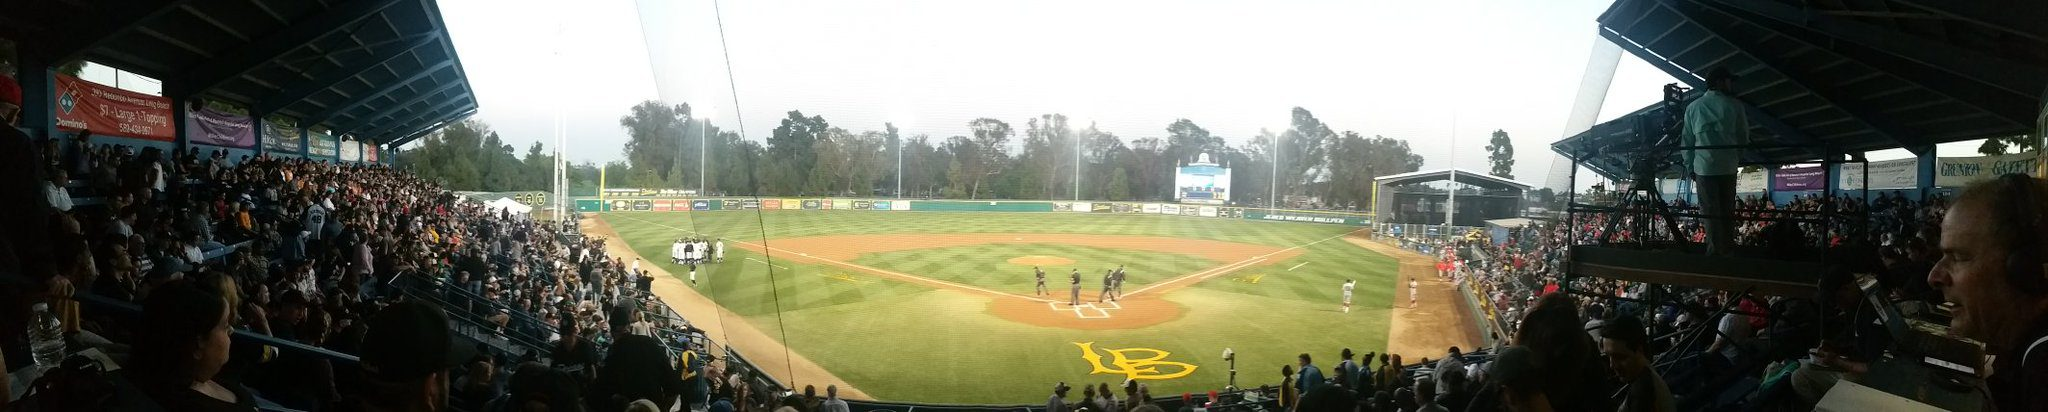 Blair Field, Long Beach State